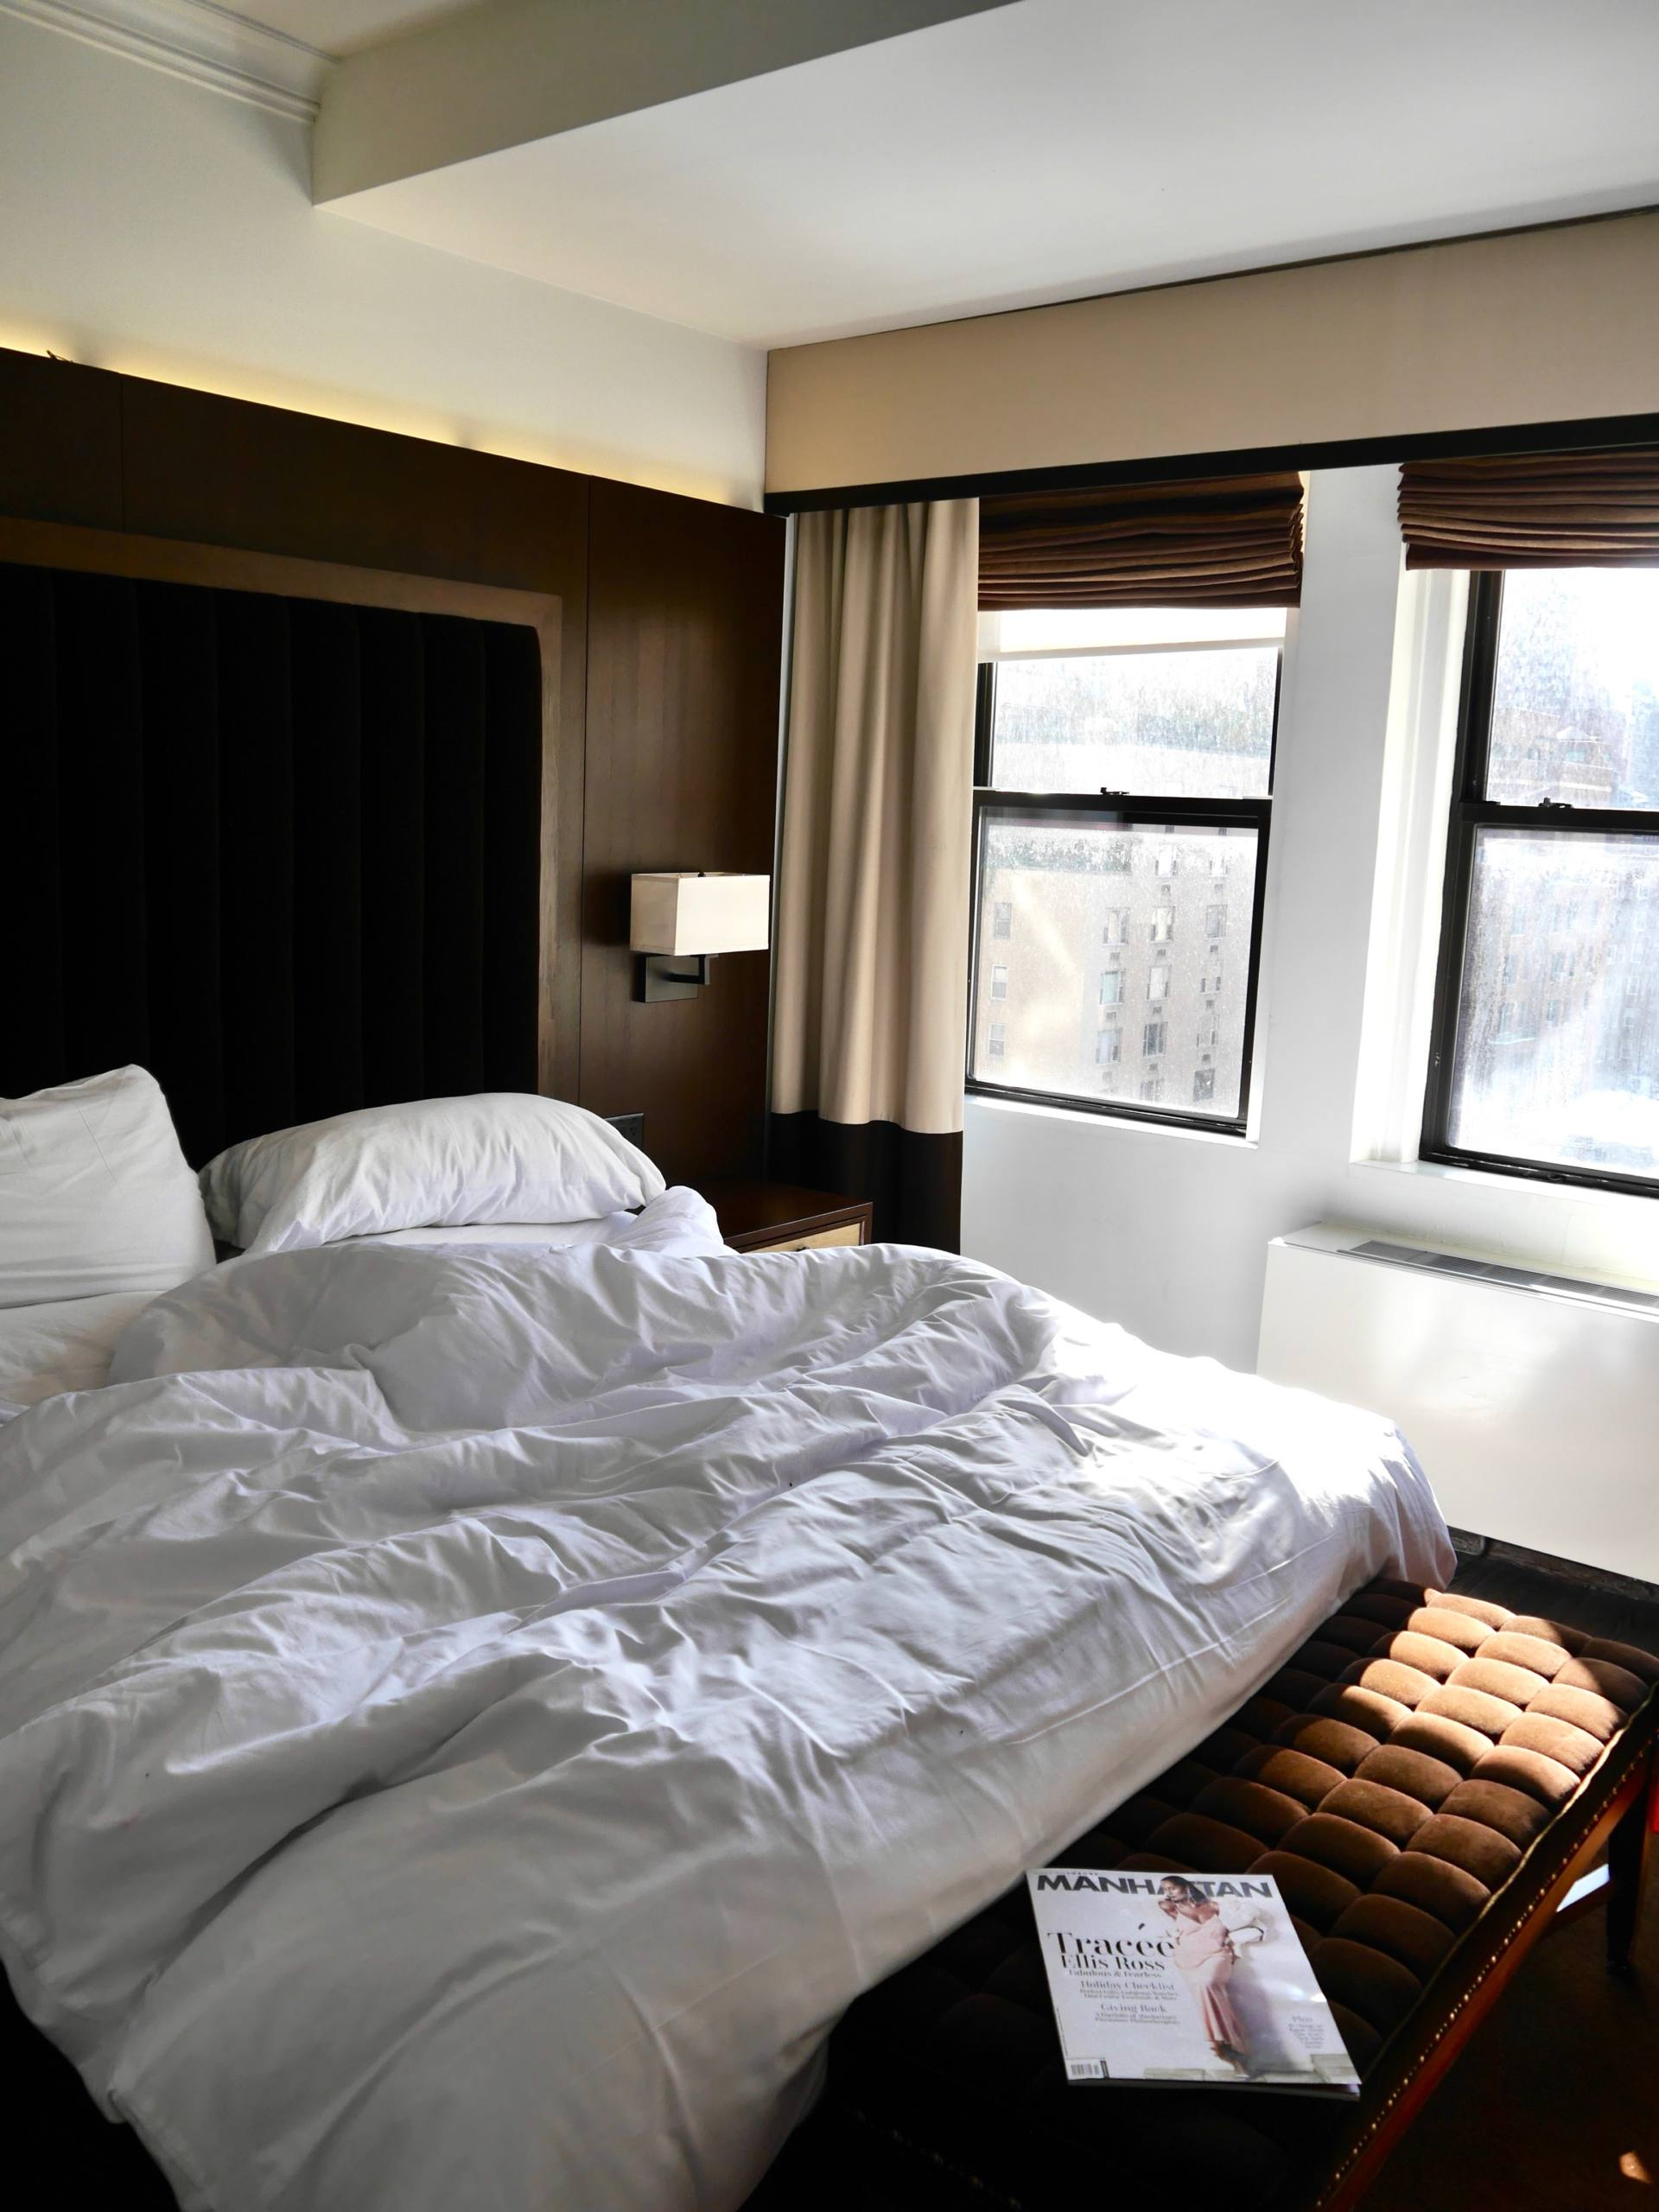 New York Hotel Usa Promotional Code